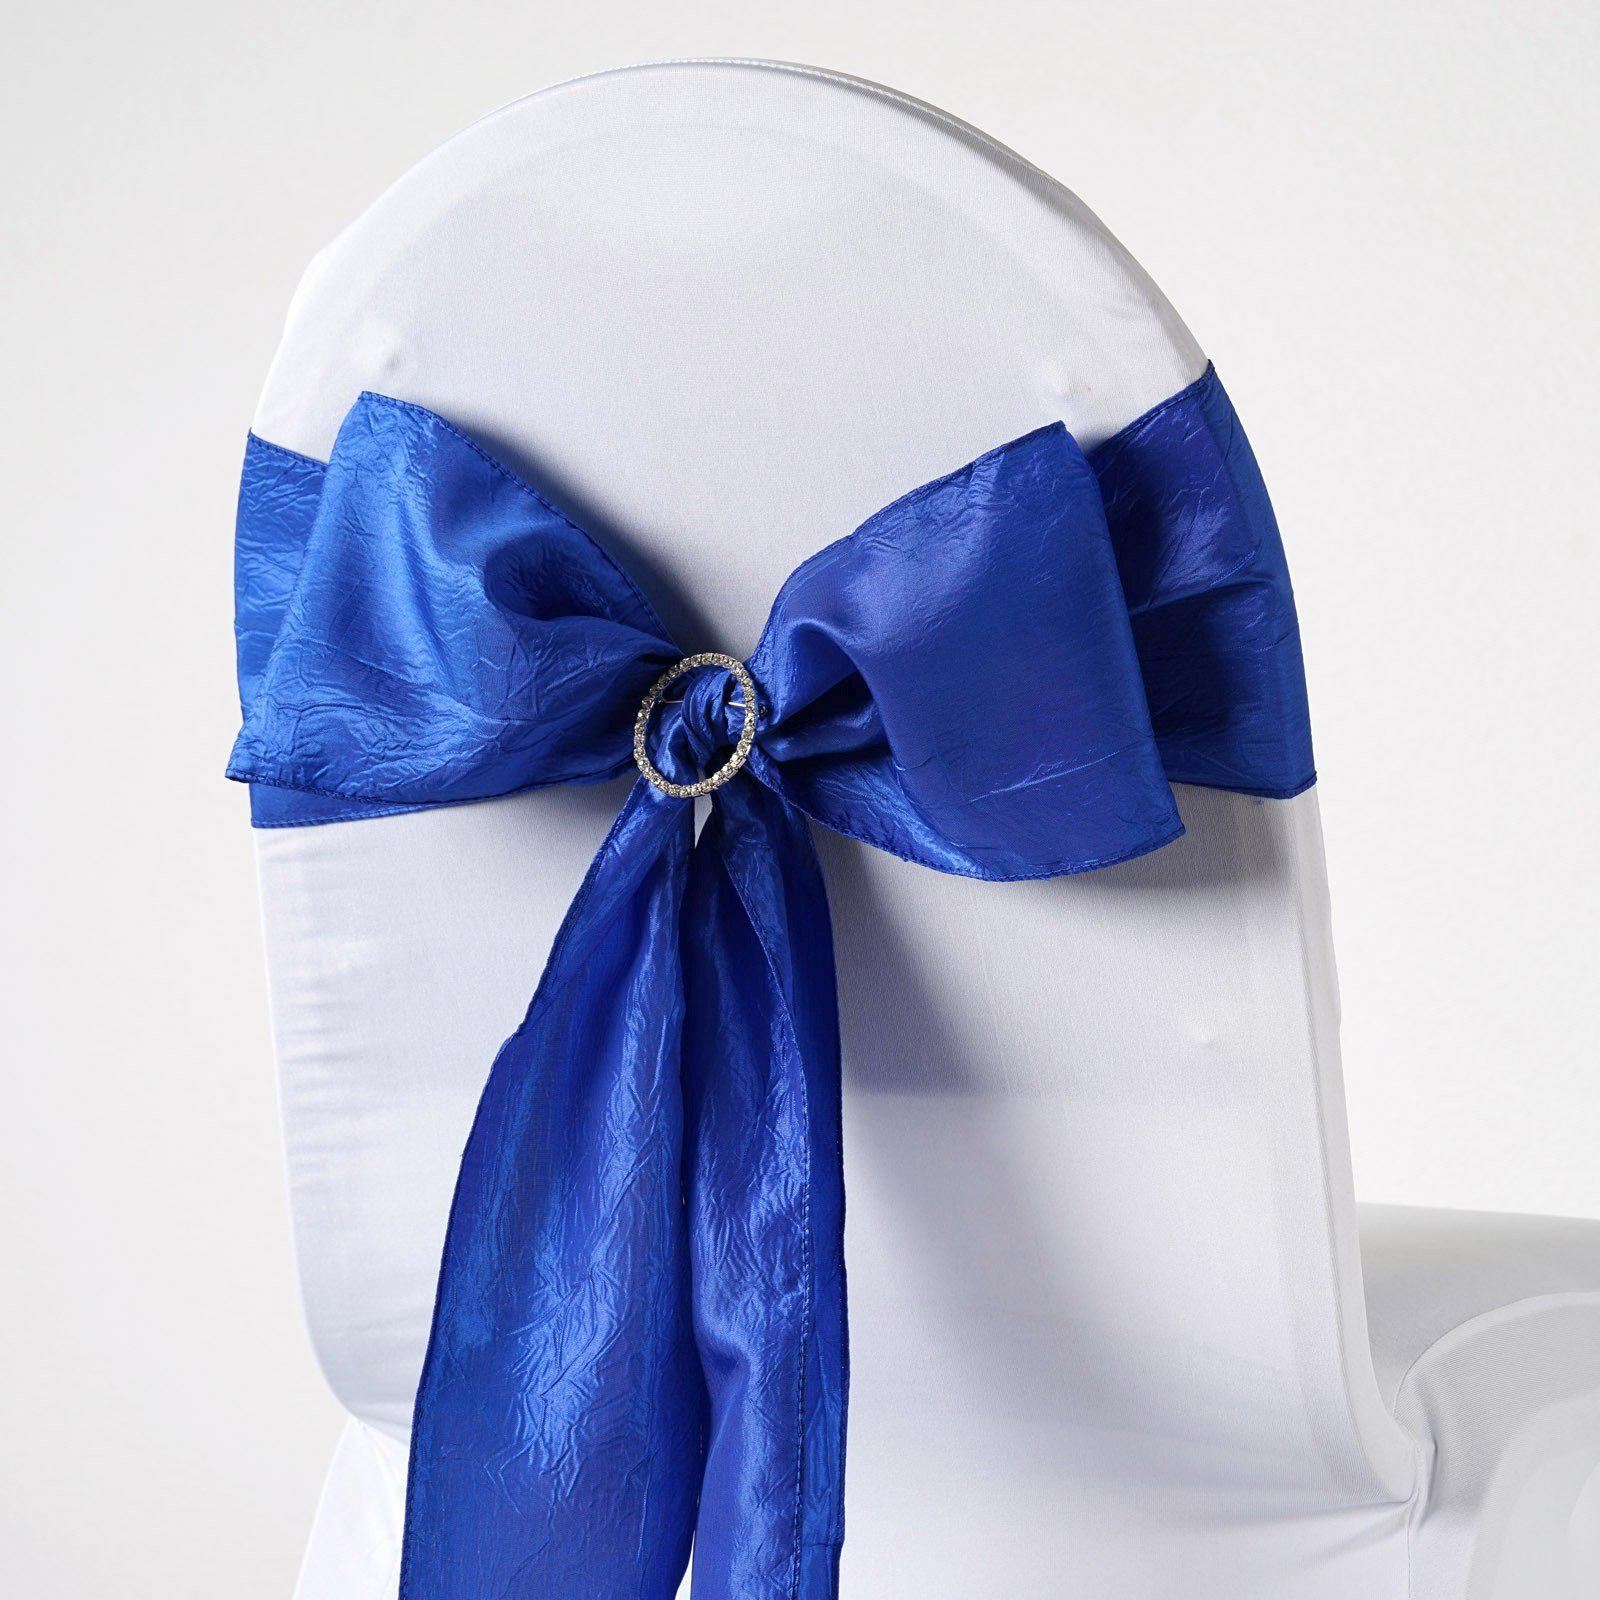 5pcs Royal Blue Taffeta Crinkle Chair Sashes Tie Bows Catering Wedding Party Decorations - 6 & Taffeta Chair Sashes u2013 tableclothsfactory.com